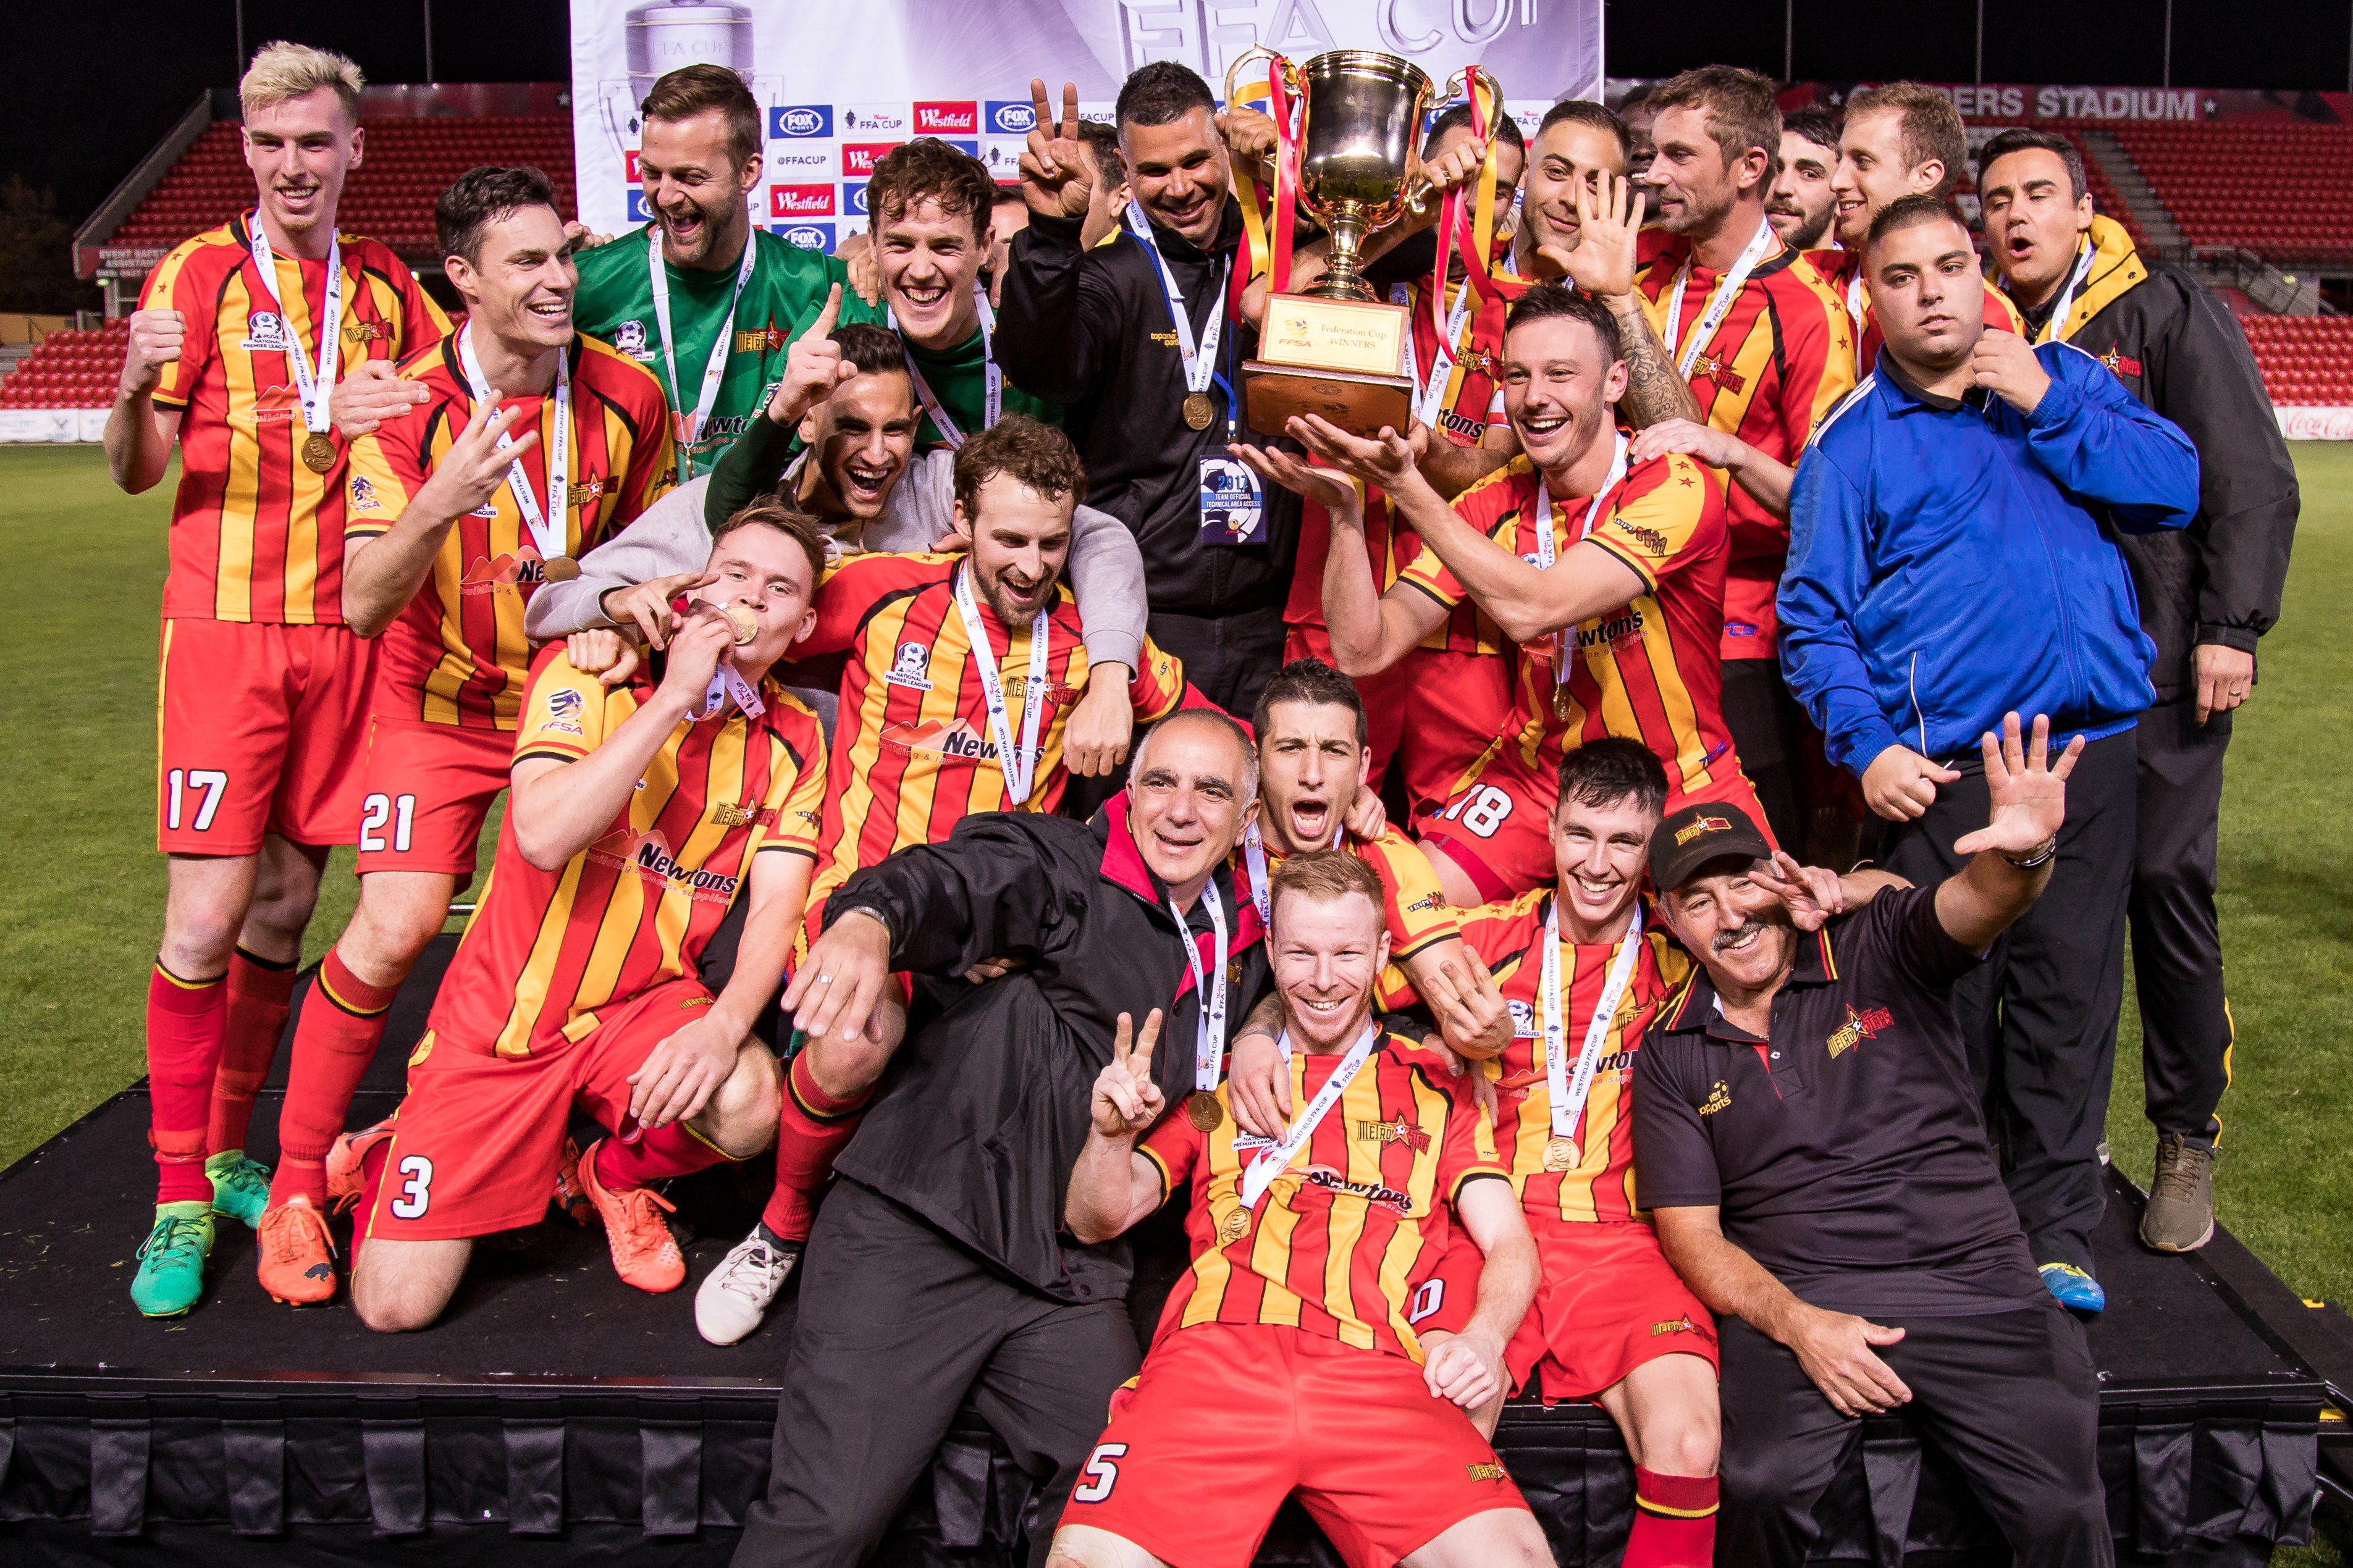 2017 Federation Cup Champions